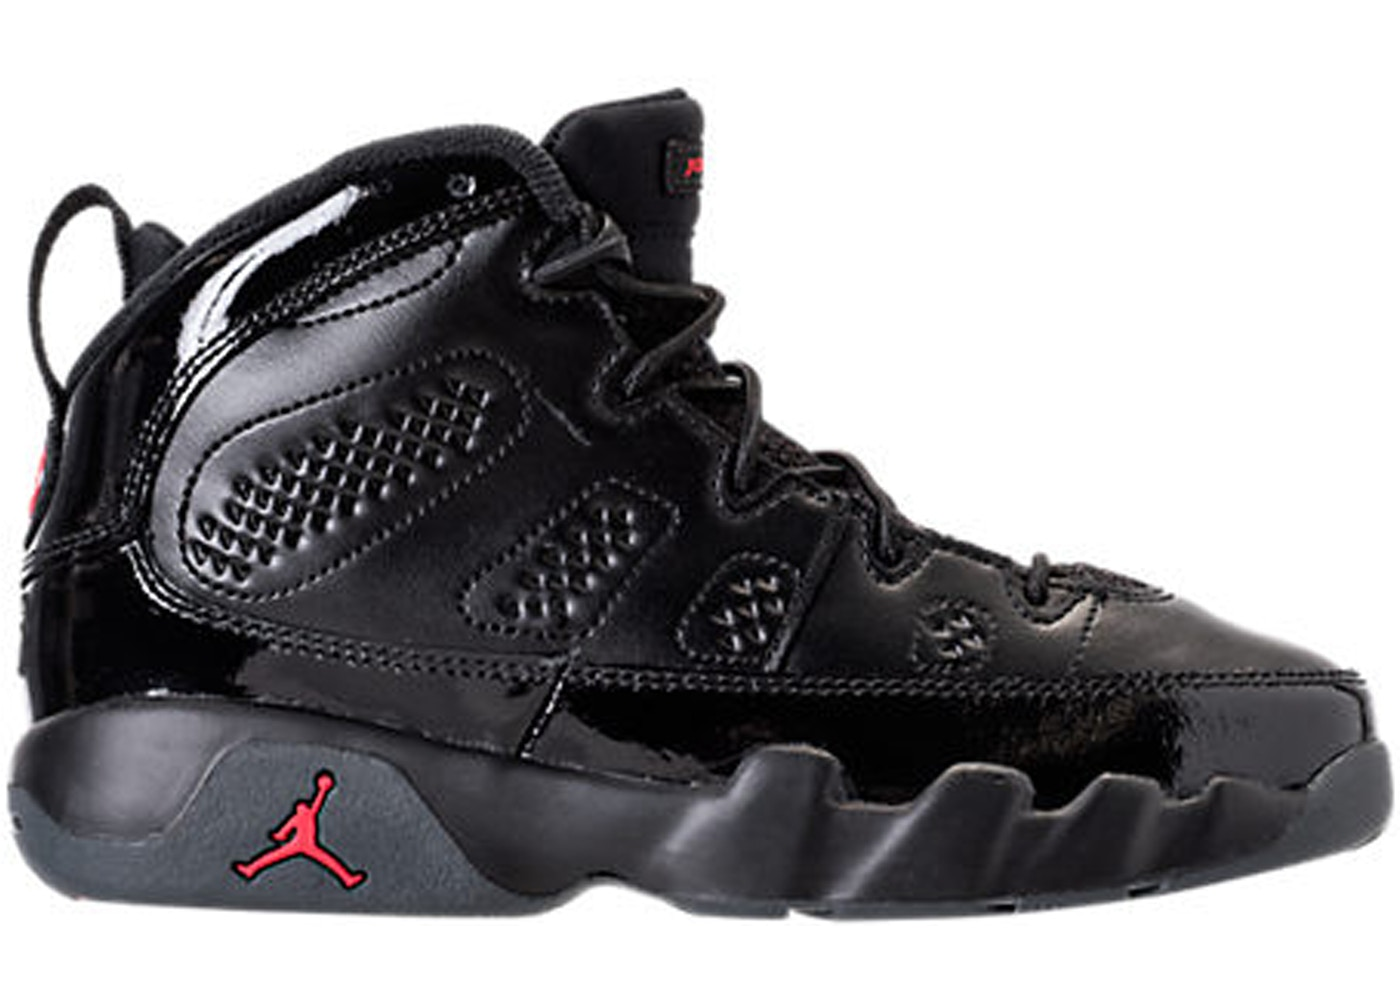 newest 6e96d 98b9c Sell. or Ask. Size 3. View All Bids. Jordan 9 Retro Bred ...